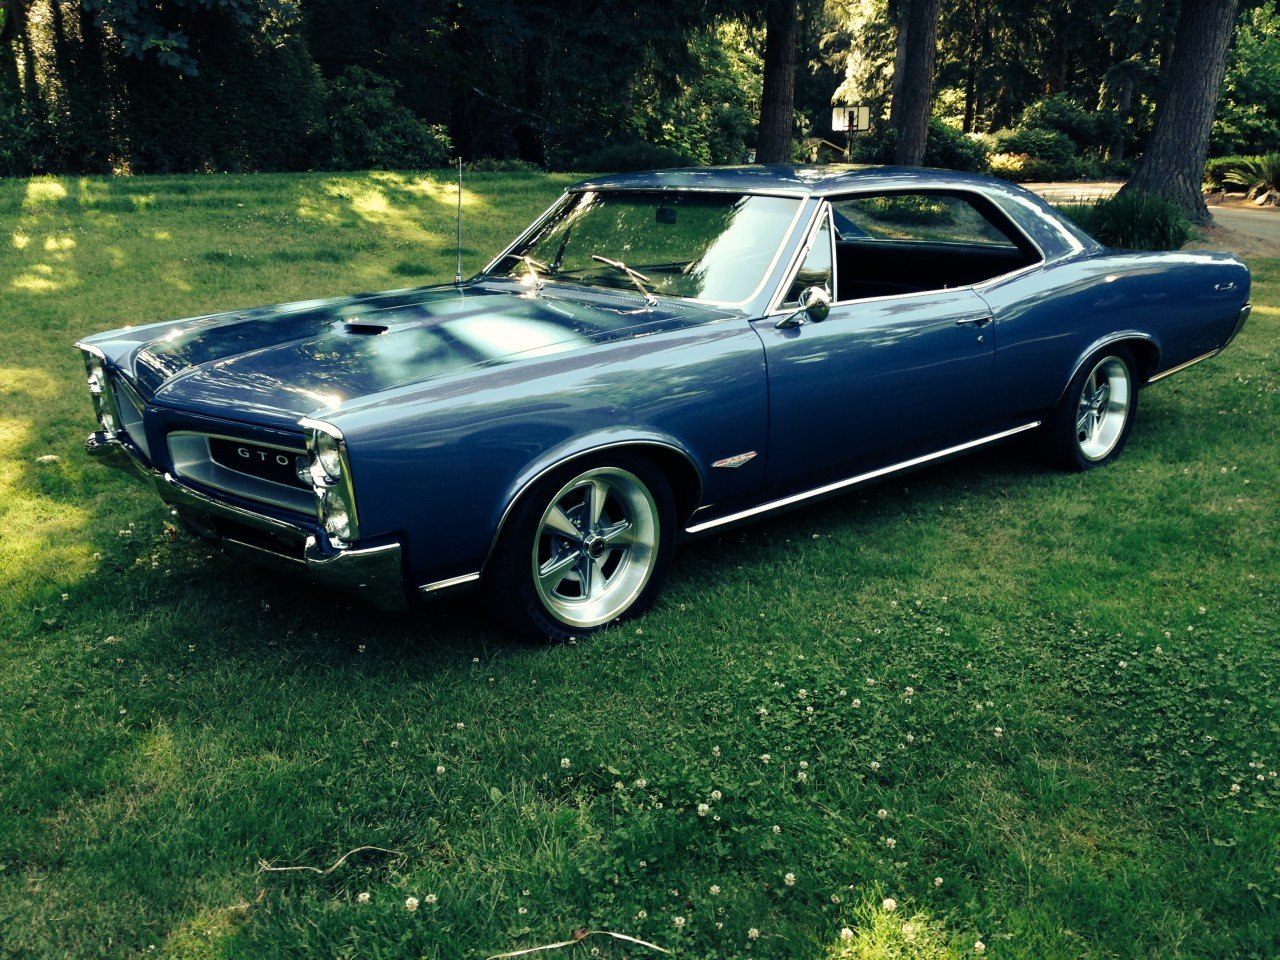 Autotrader Muscle Cars For Sale >> 1966 Pontiac GTO for sale near woodinville, Washington 98072 - Classics on Autotrader